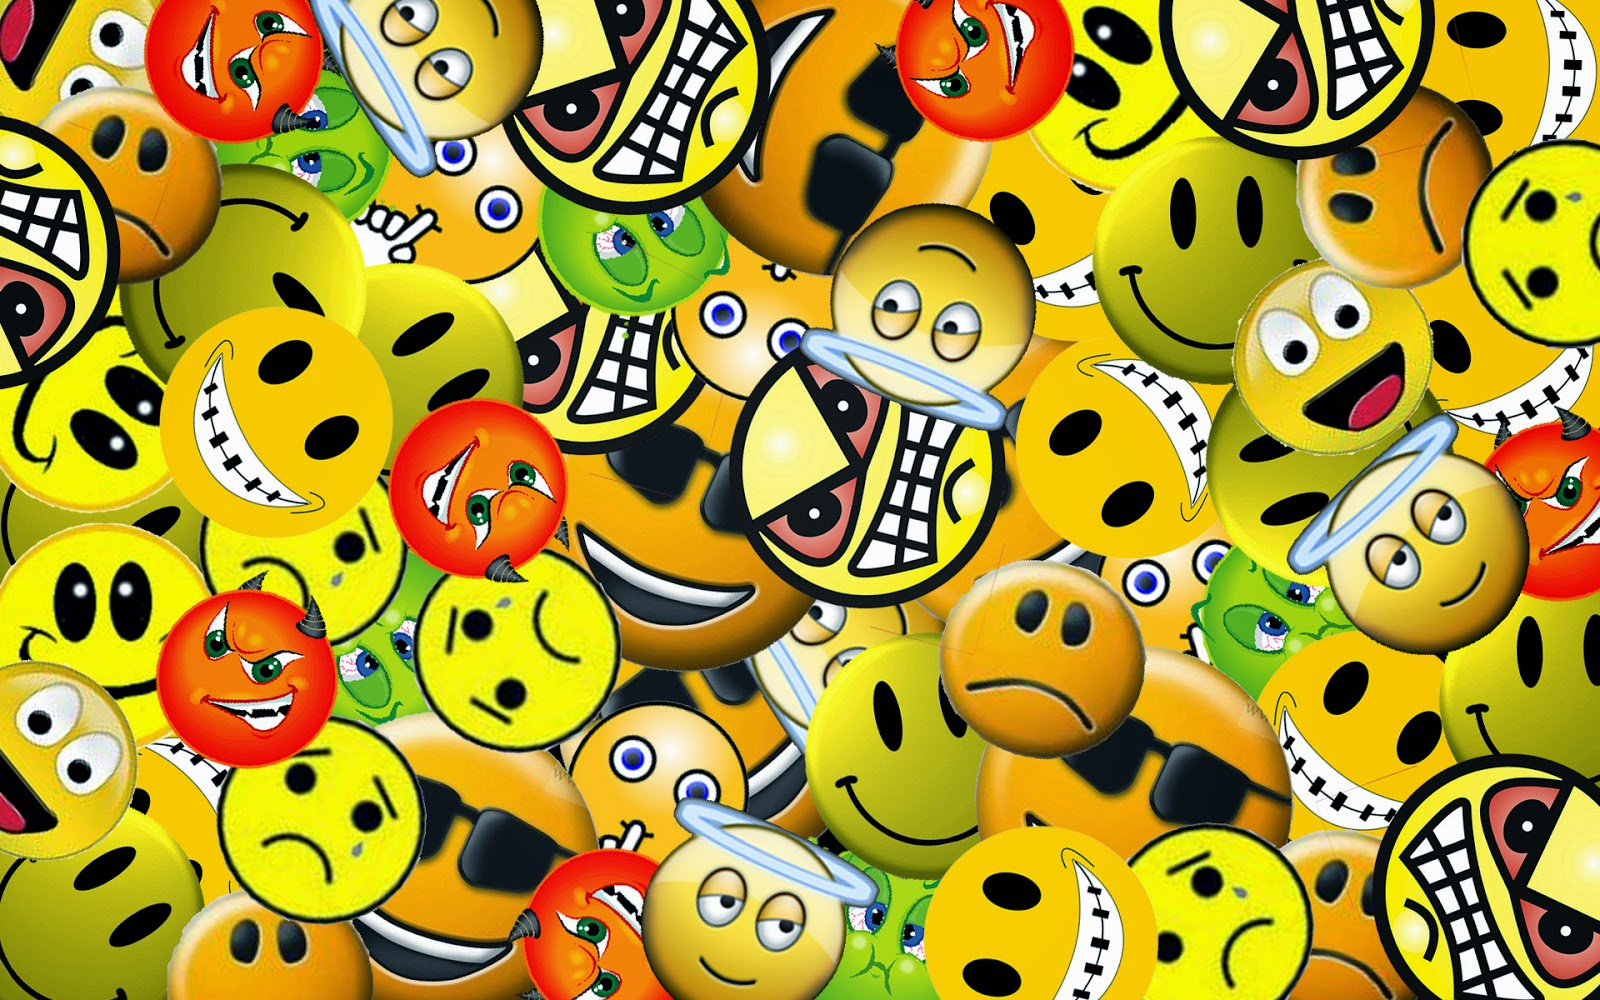 smileys wallpapers for mobile - photo #23